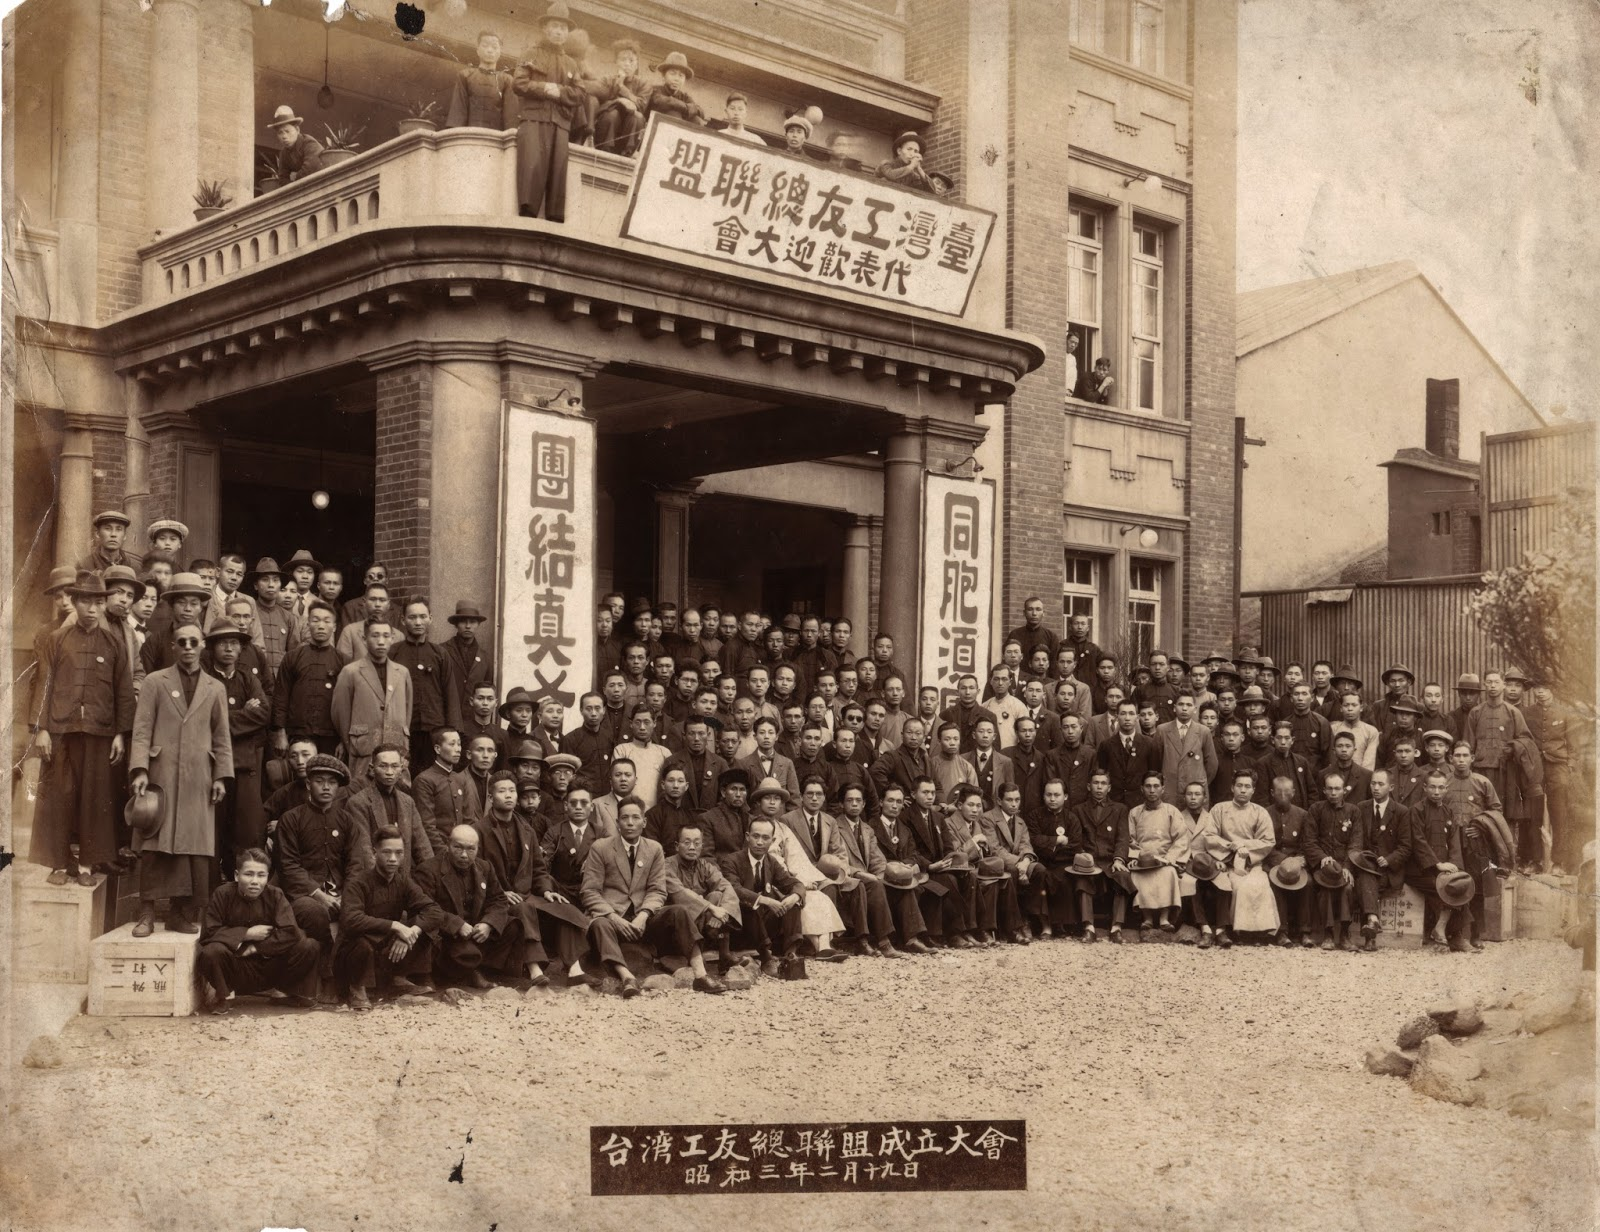 File:1928臺灣工友總聯盟大會 Alliance Meeting of Taiwanese Labor Unions.jpg